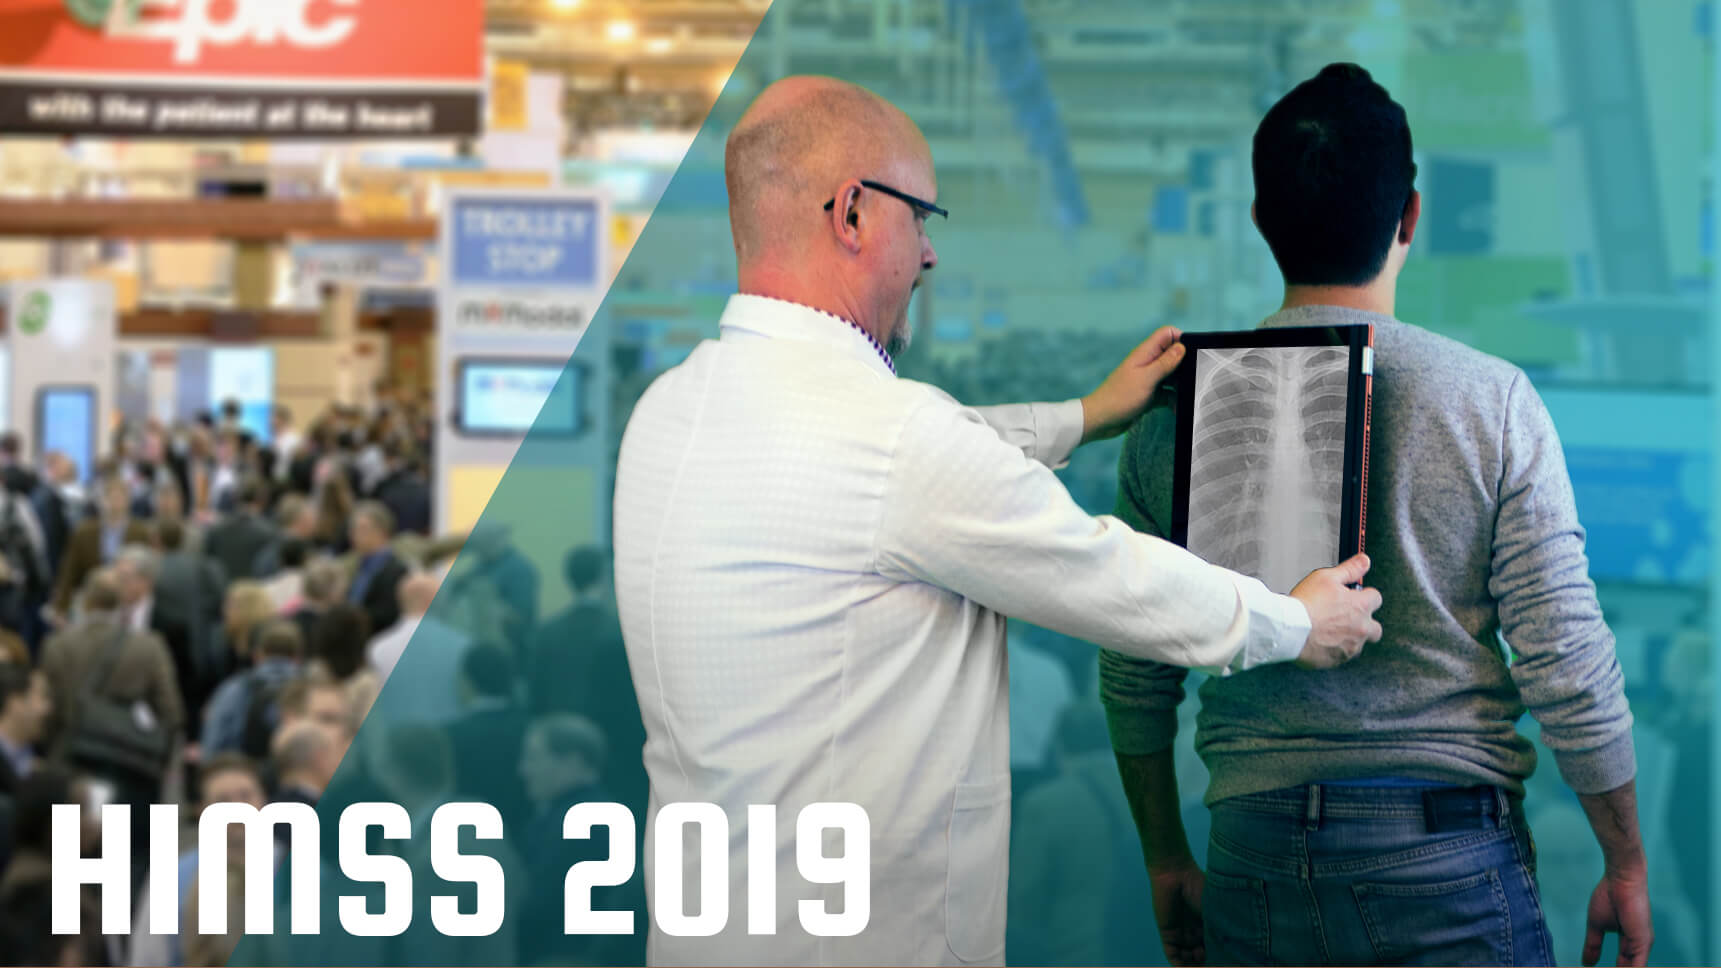 Trends at the HIMSS 2019 Conference